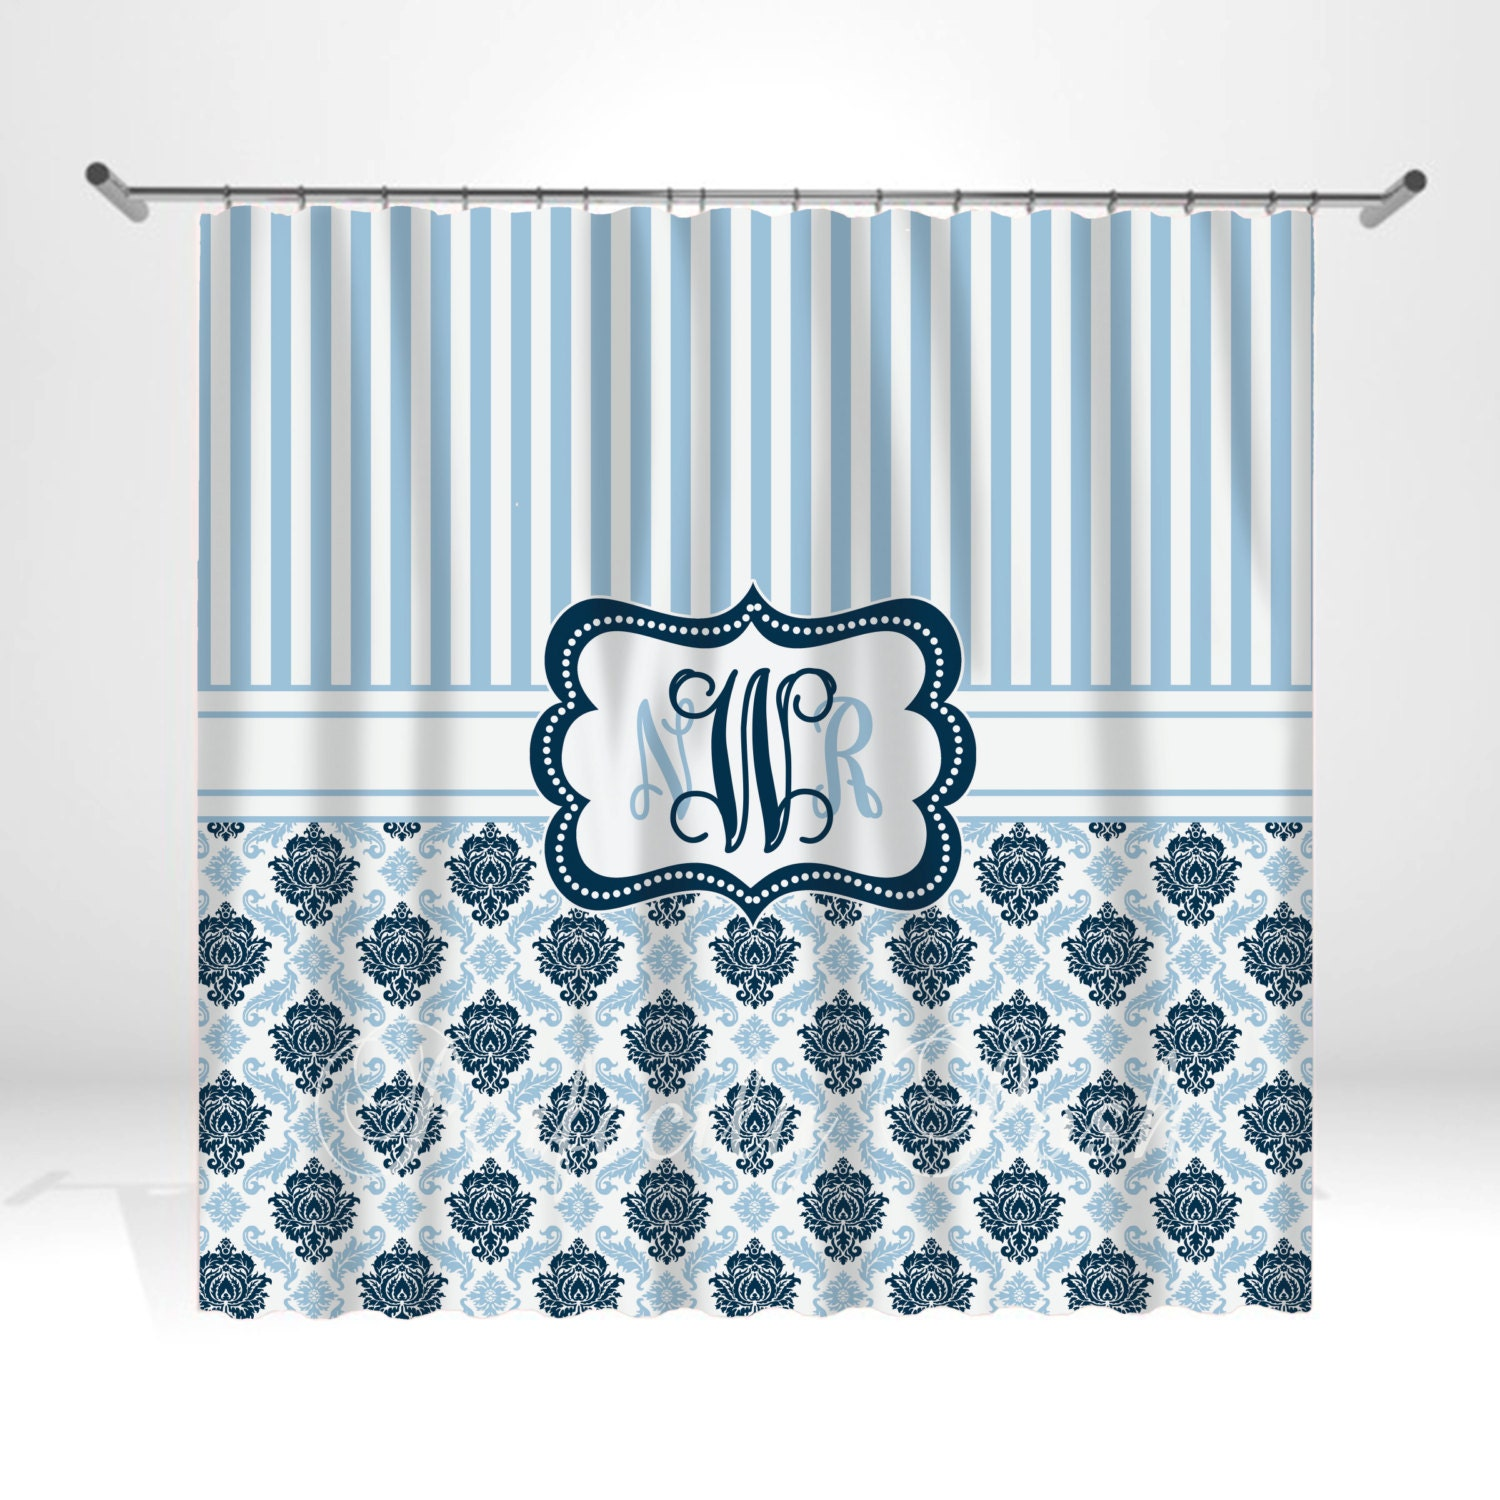 Monogrammed Shower Curtain Products I Love Pinterest Monogrammed Shower Curtain Home Design